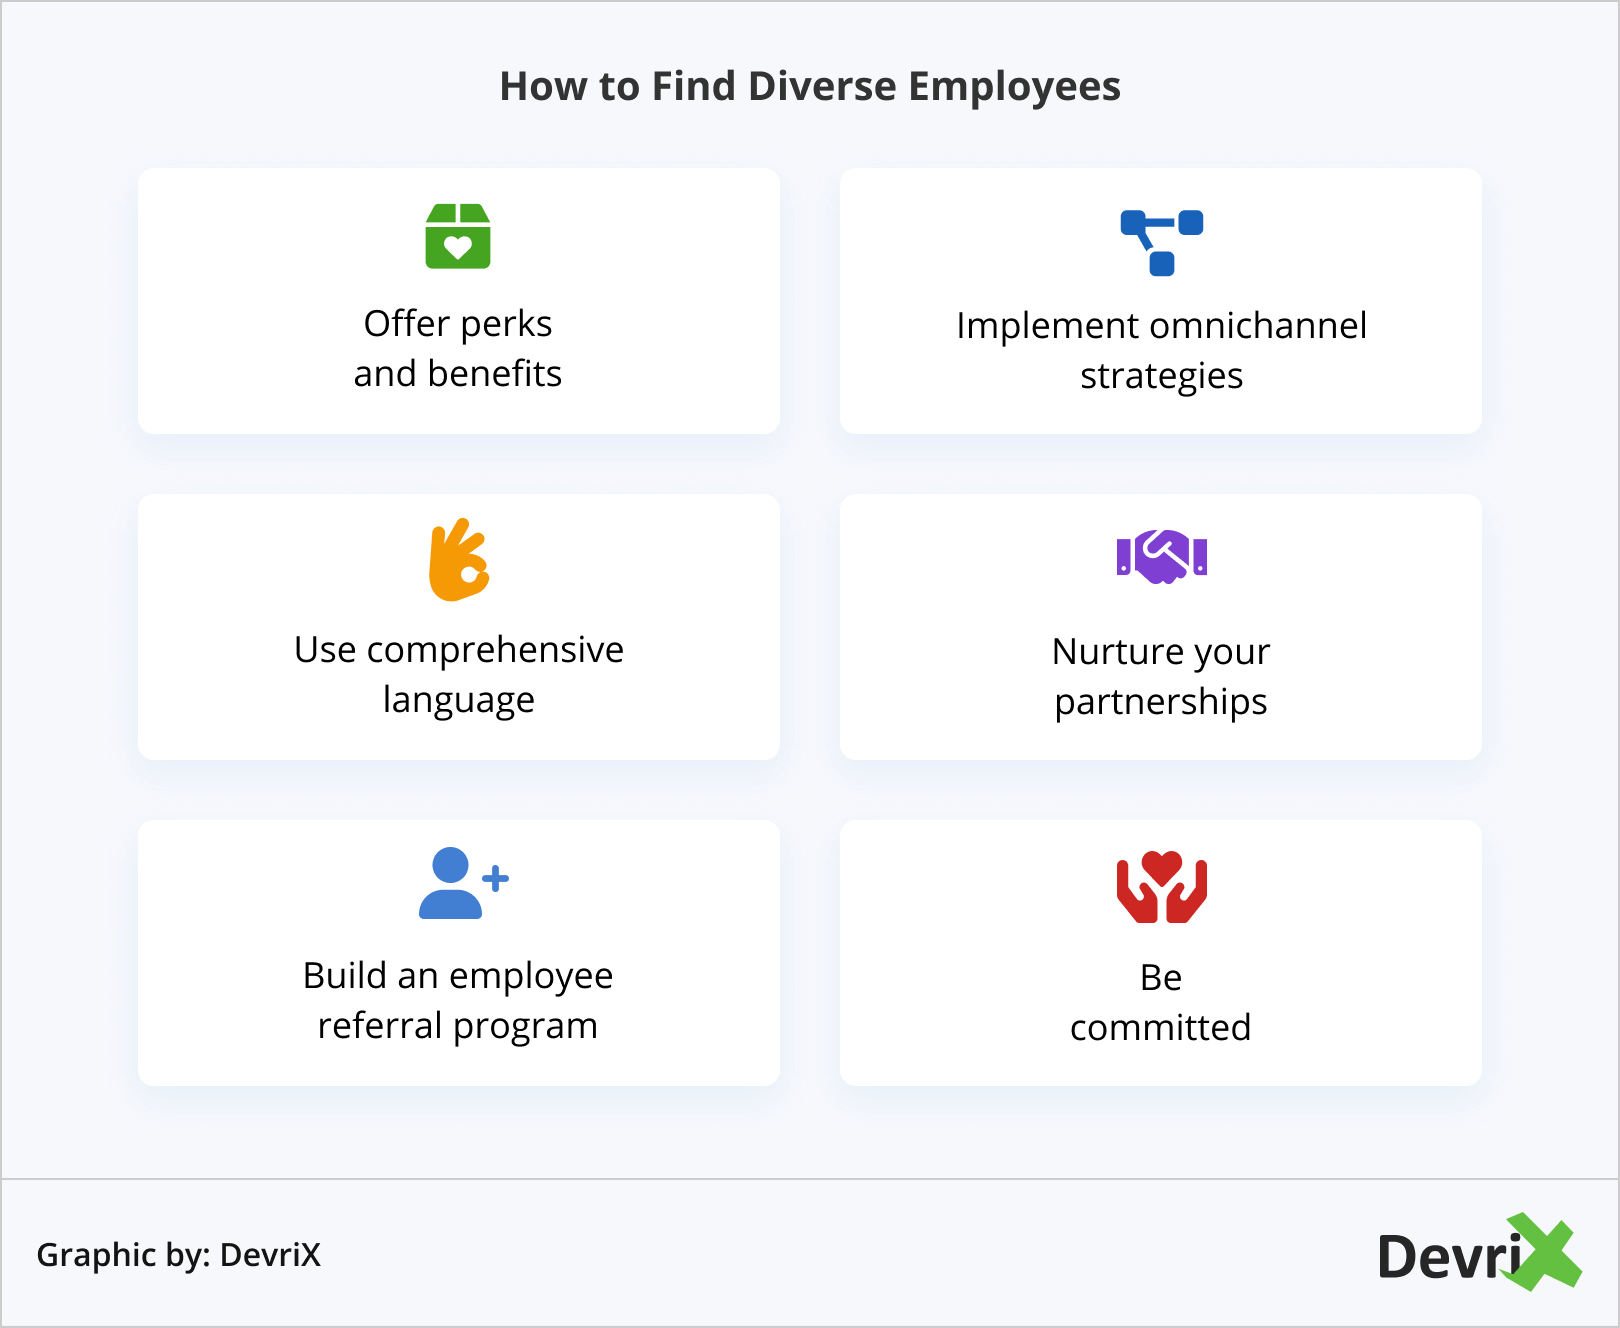 How to Find Diverse Employees